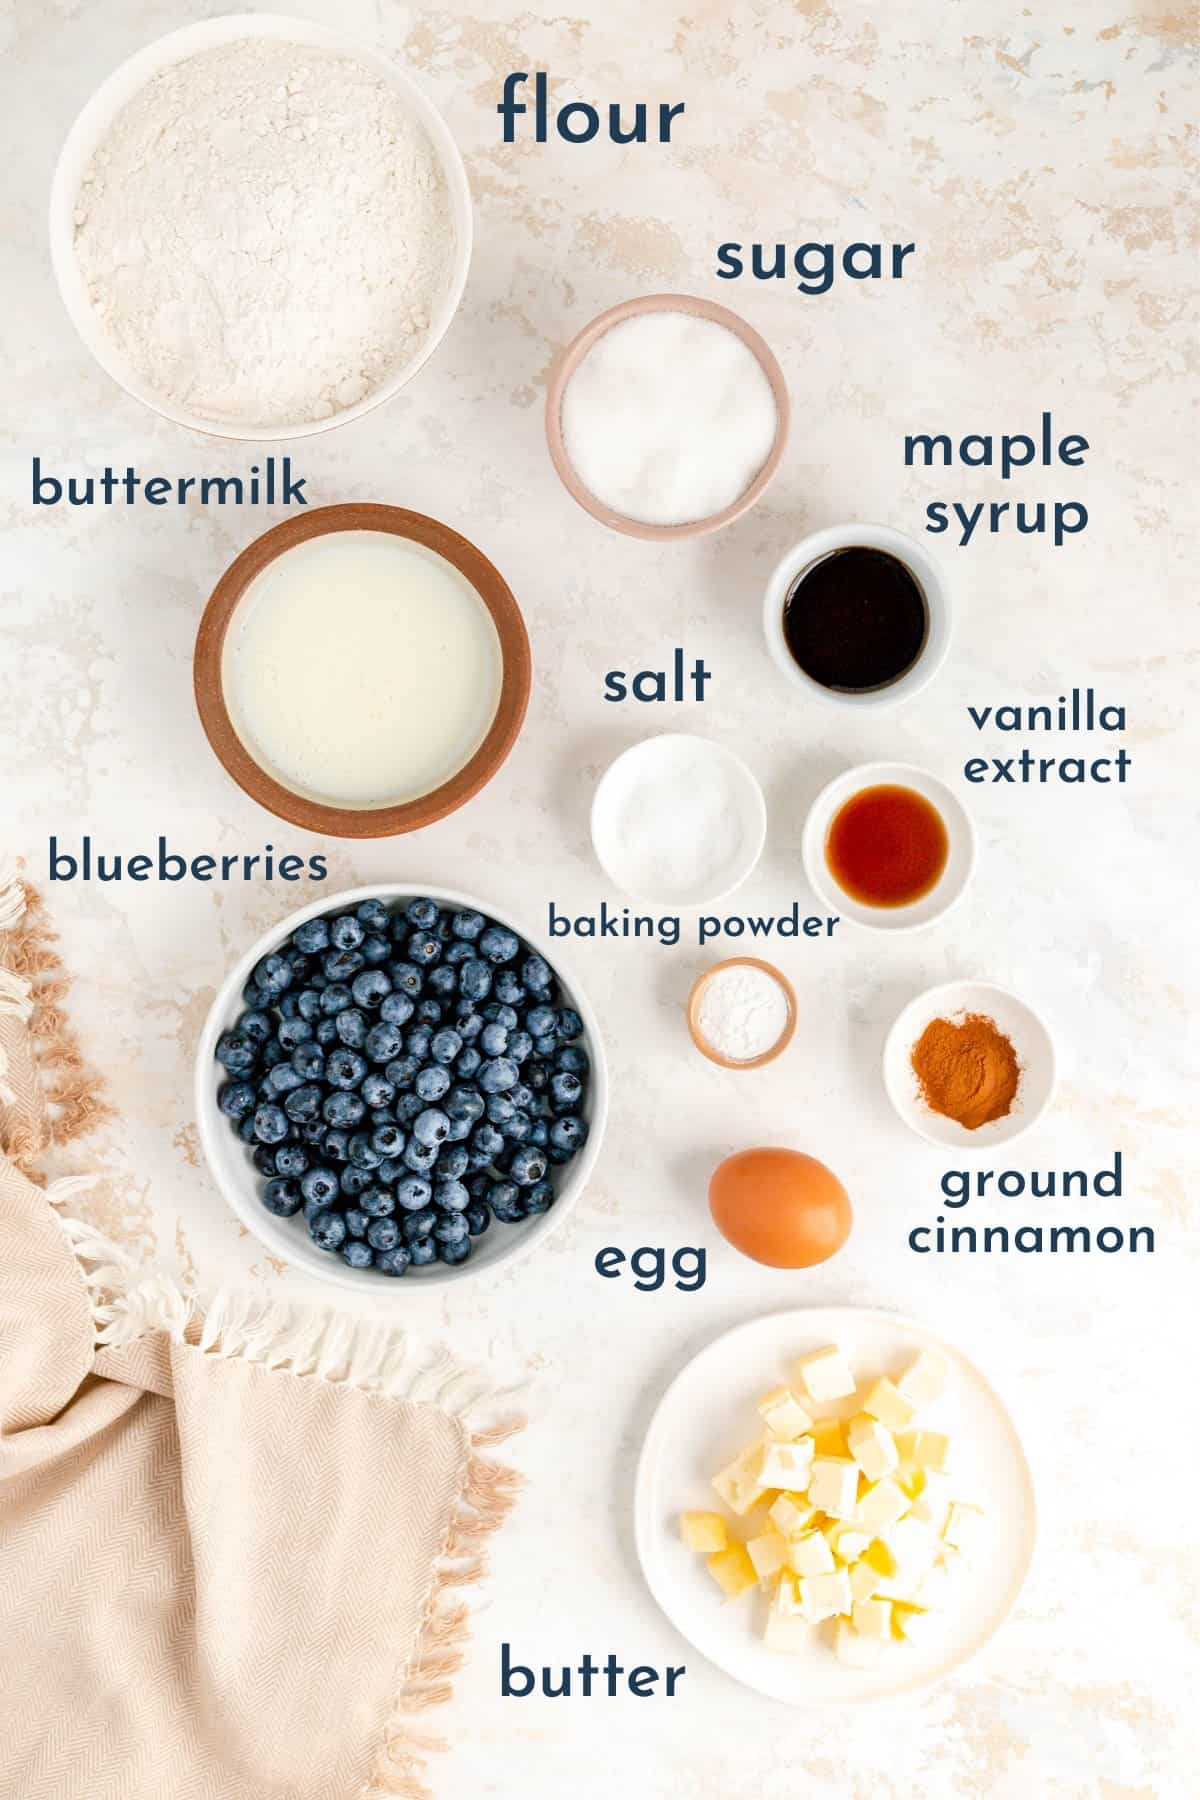 labeled bowls of ingredients for making maple blueberry drop scones